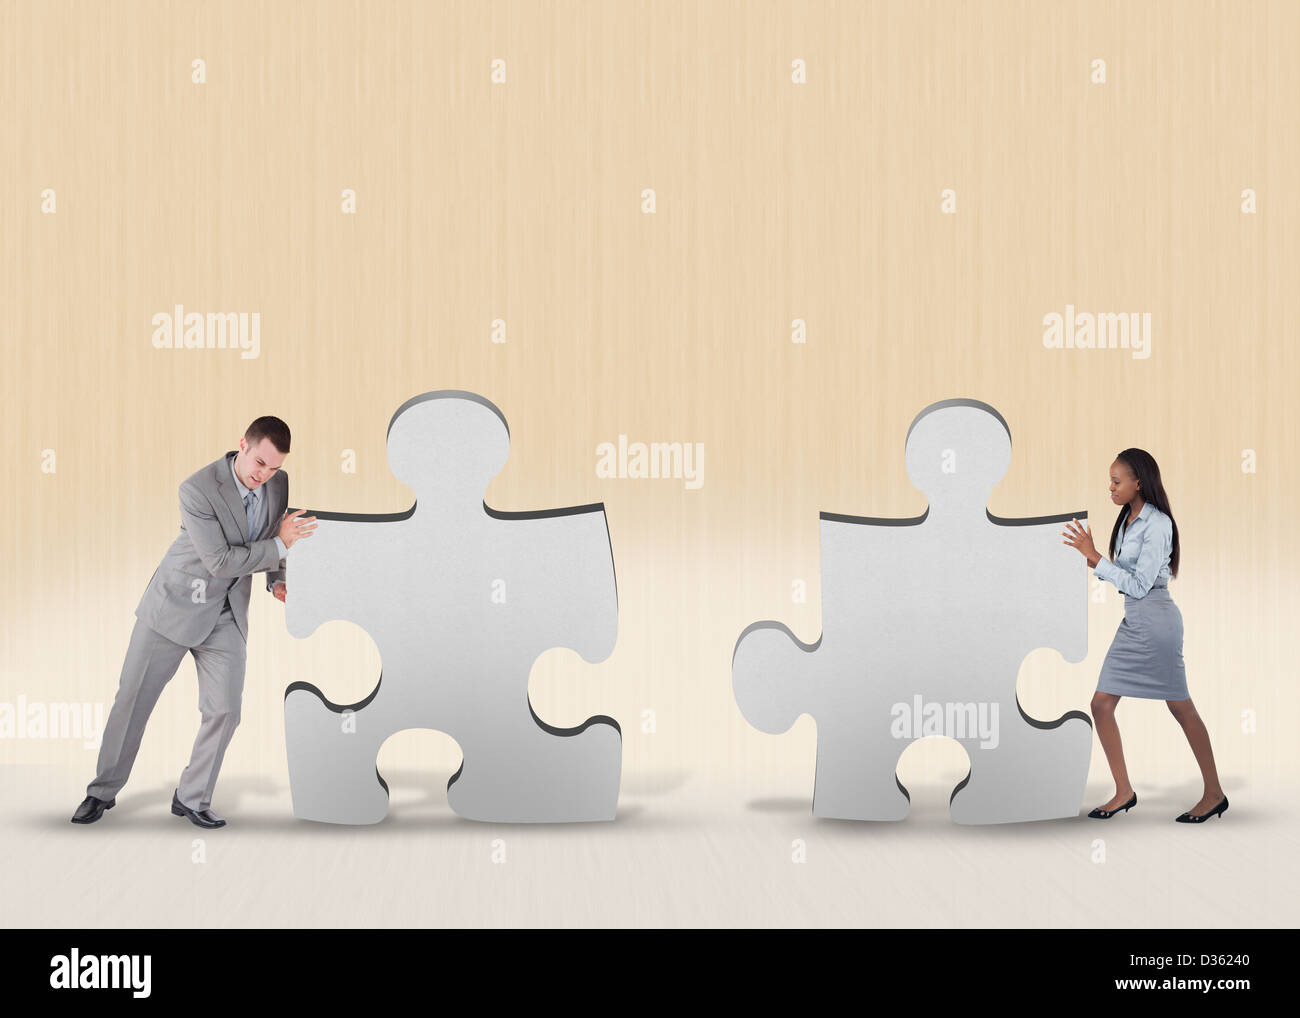 Business problem solving - Stock Image